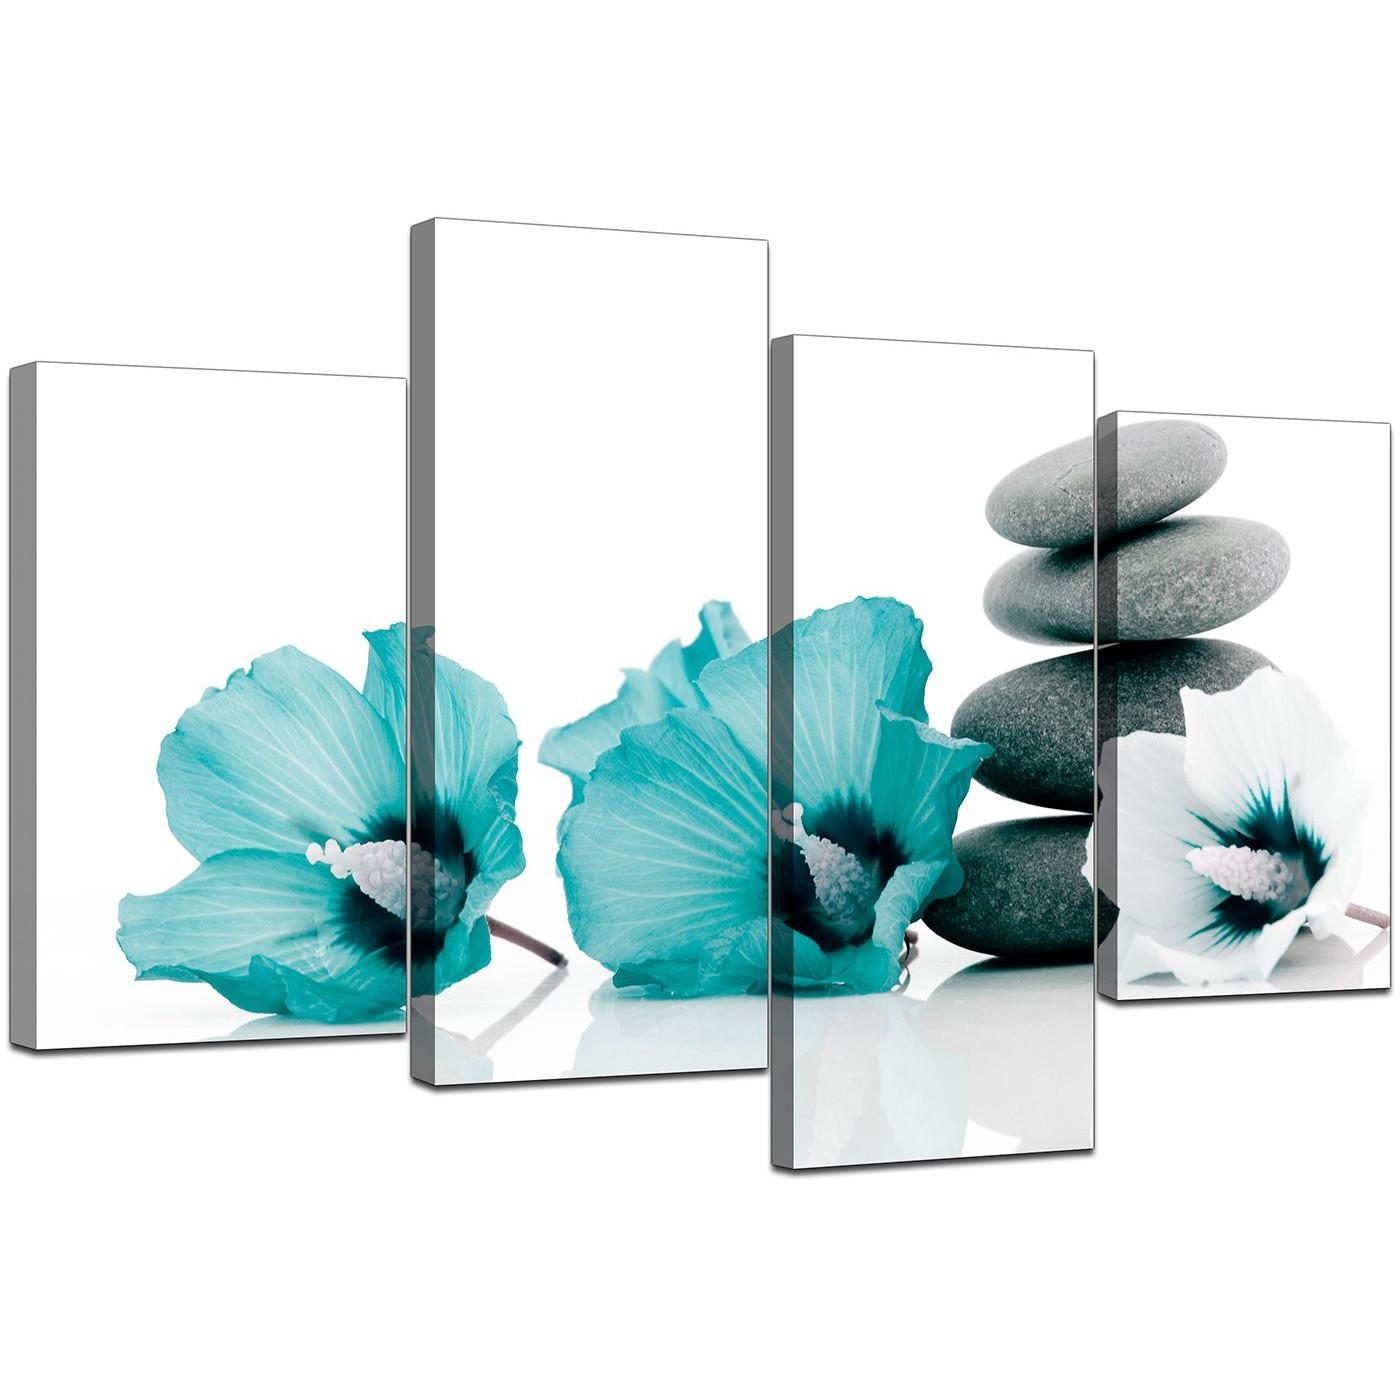 Canvas Wall Art Of Flowers In Teal For Your Living Room With Regard To Teal Flower Canvas Wall Art (View 14 of 20)